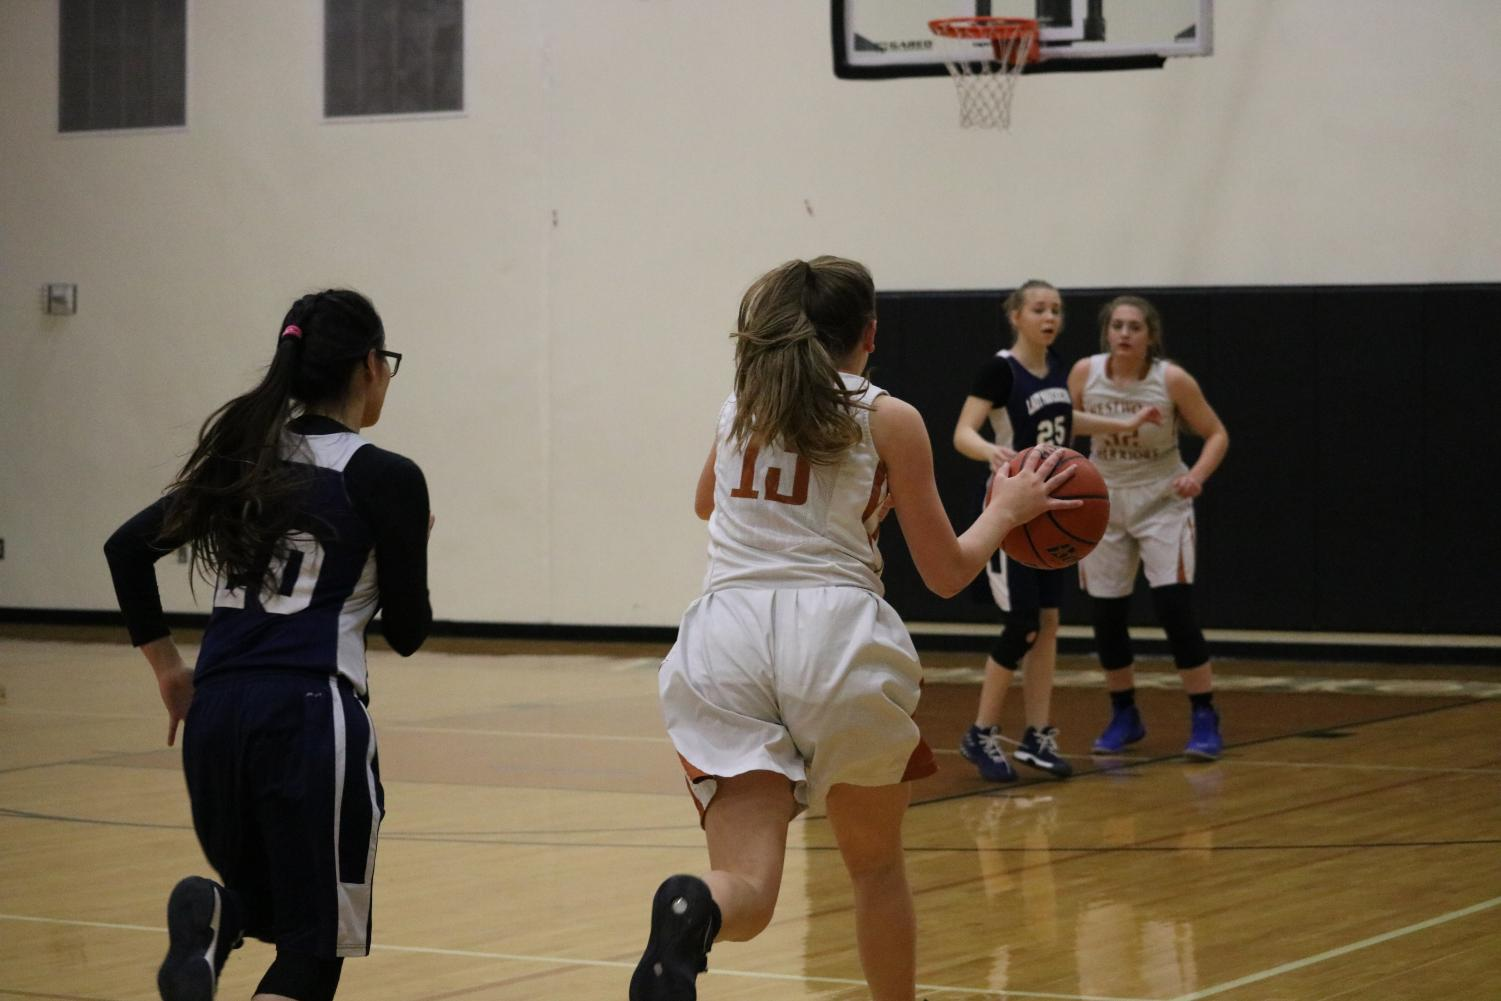 Peyton+Halley+%2721+runs+with+the+ball+to+score+a+basket.